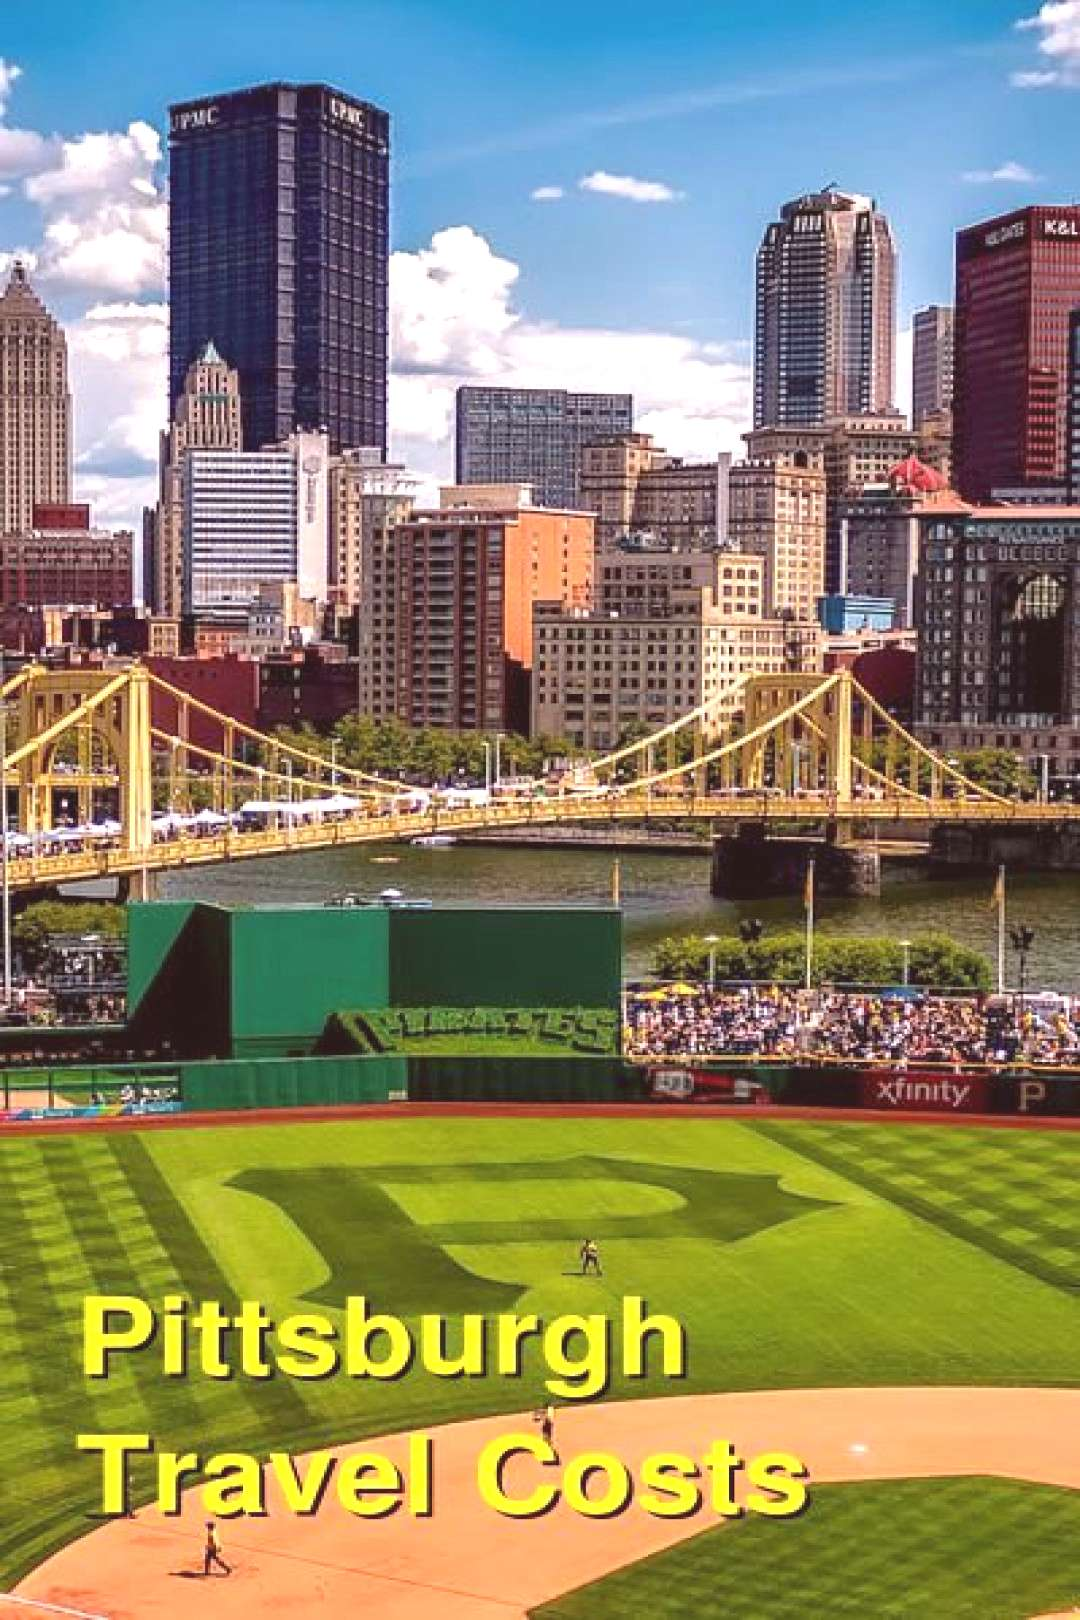 Pittsburgh Travel Cost - Average Price of a Vacation to Pittsburgh Food amp Meal Budget, Daily amp Wee